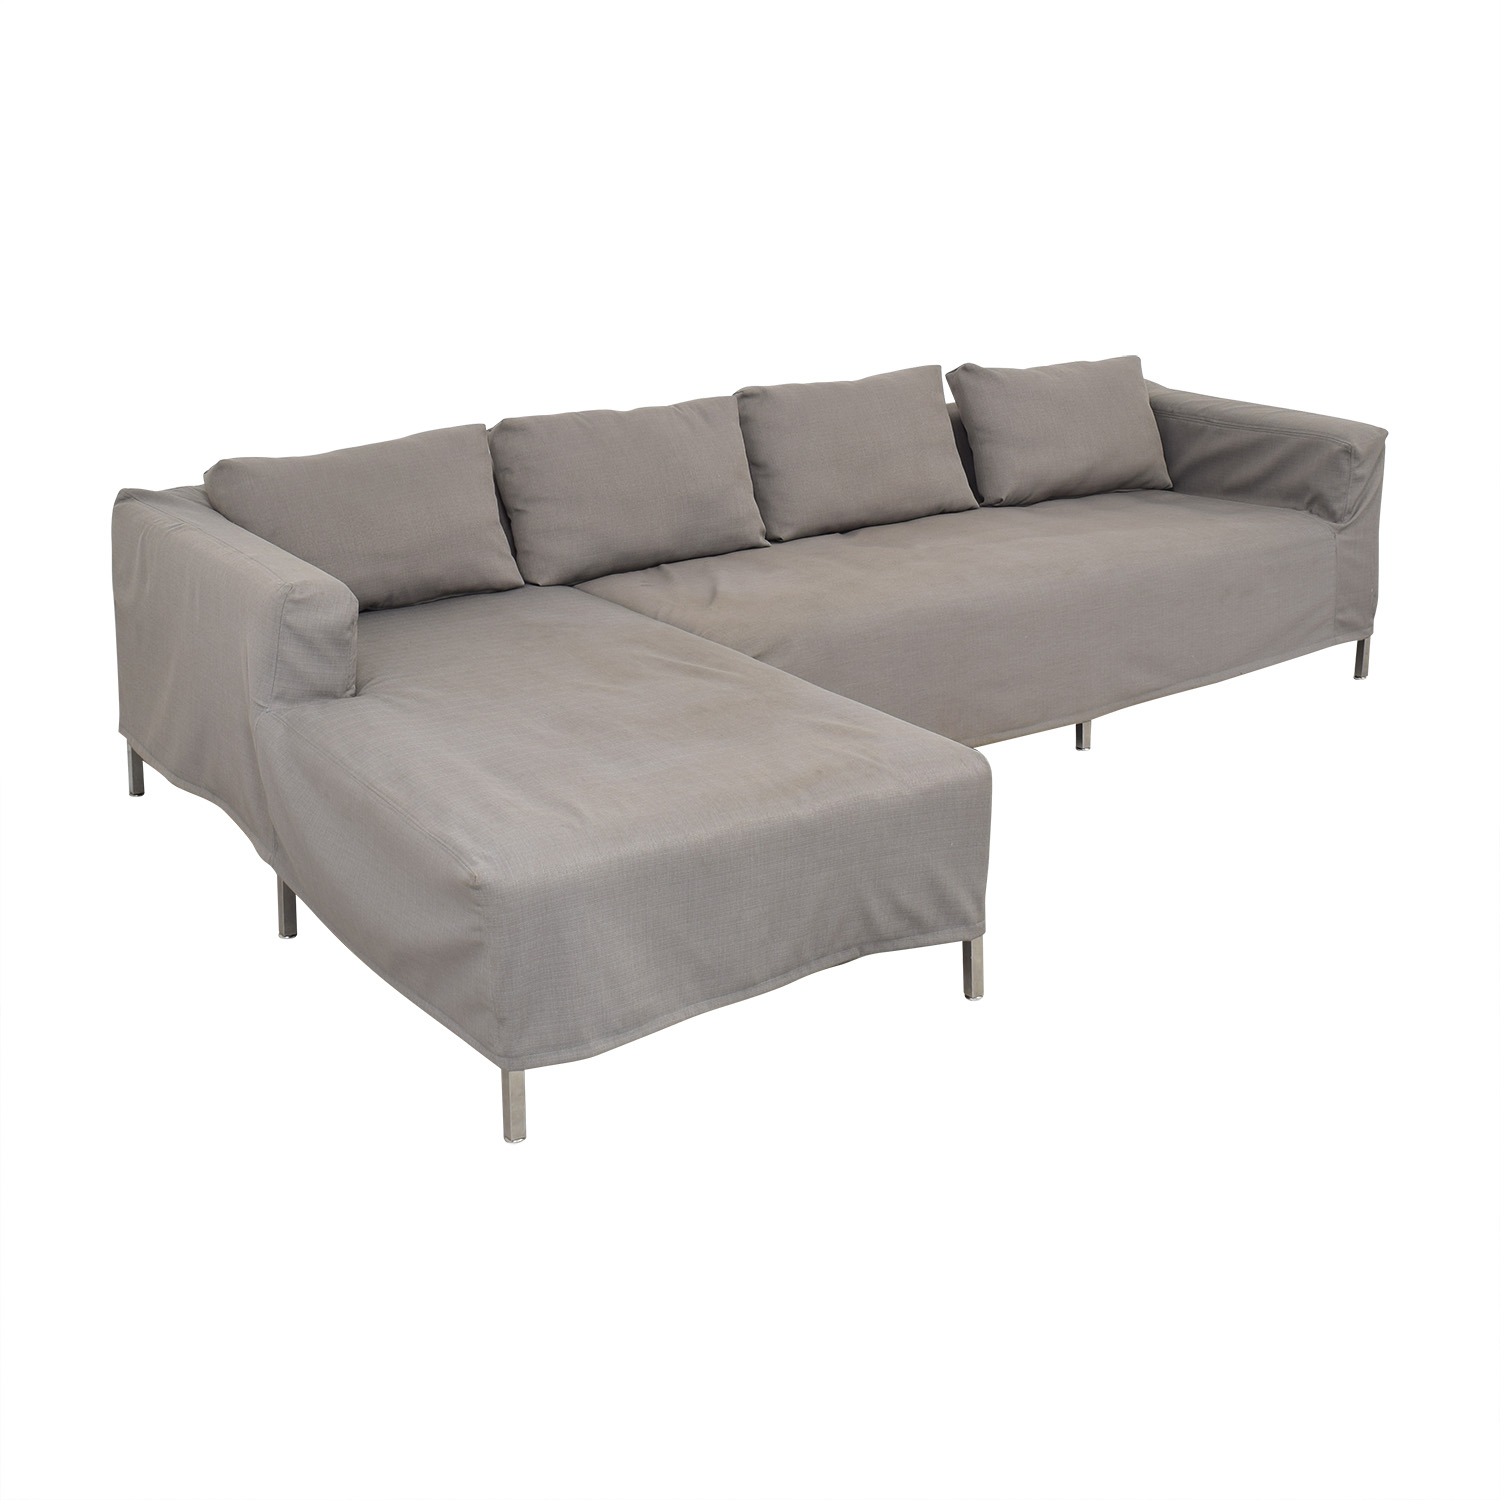 buy Gus Modern Sectional Sofa with Chaise Gus Modern Sectionals